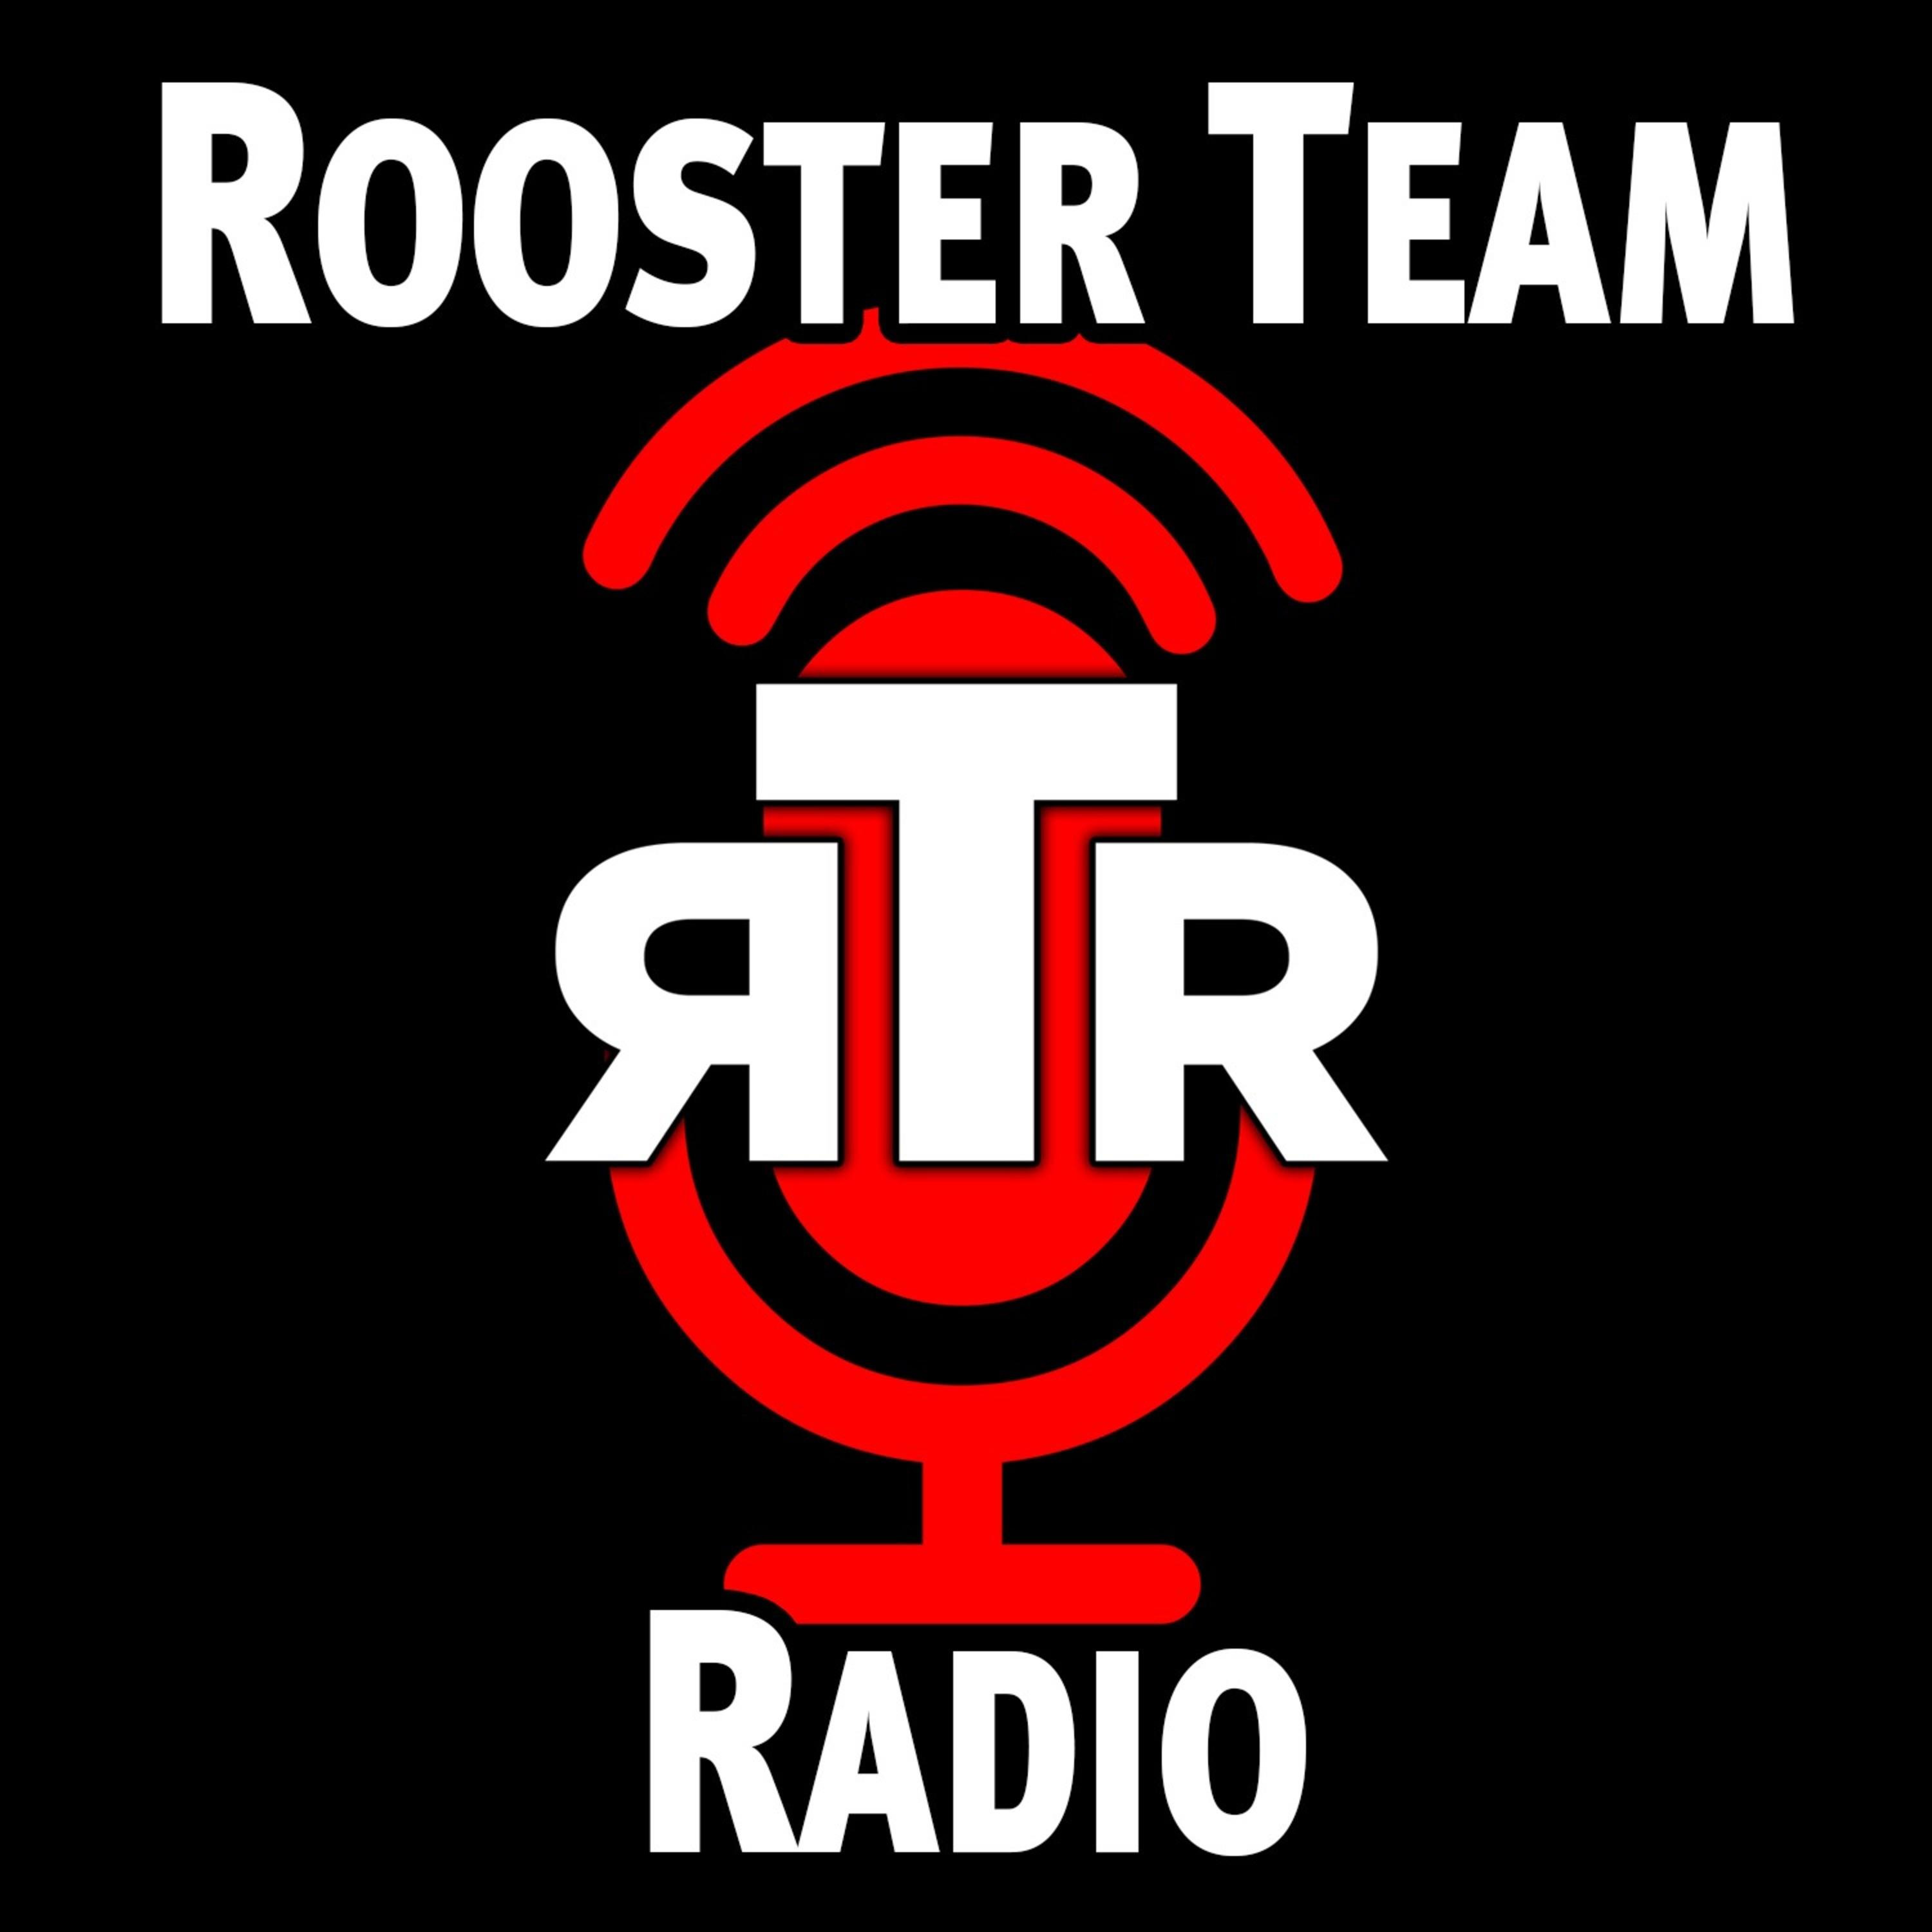 Rooster Team Radio | Listen via Stitcher for Podcasts